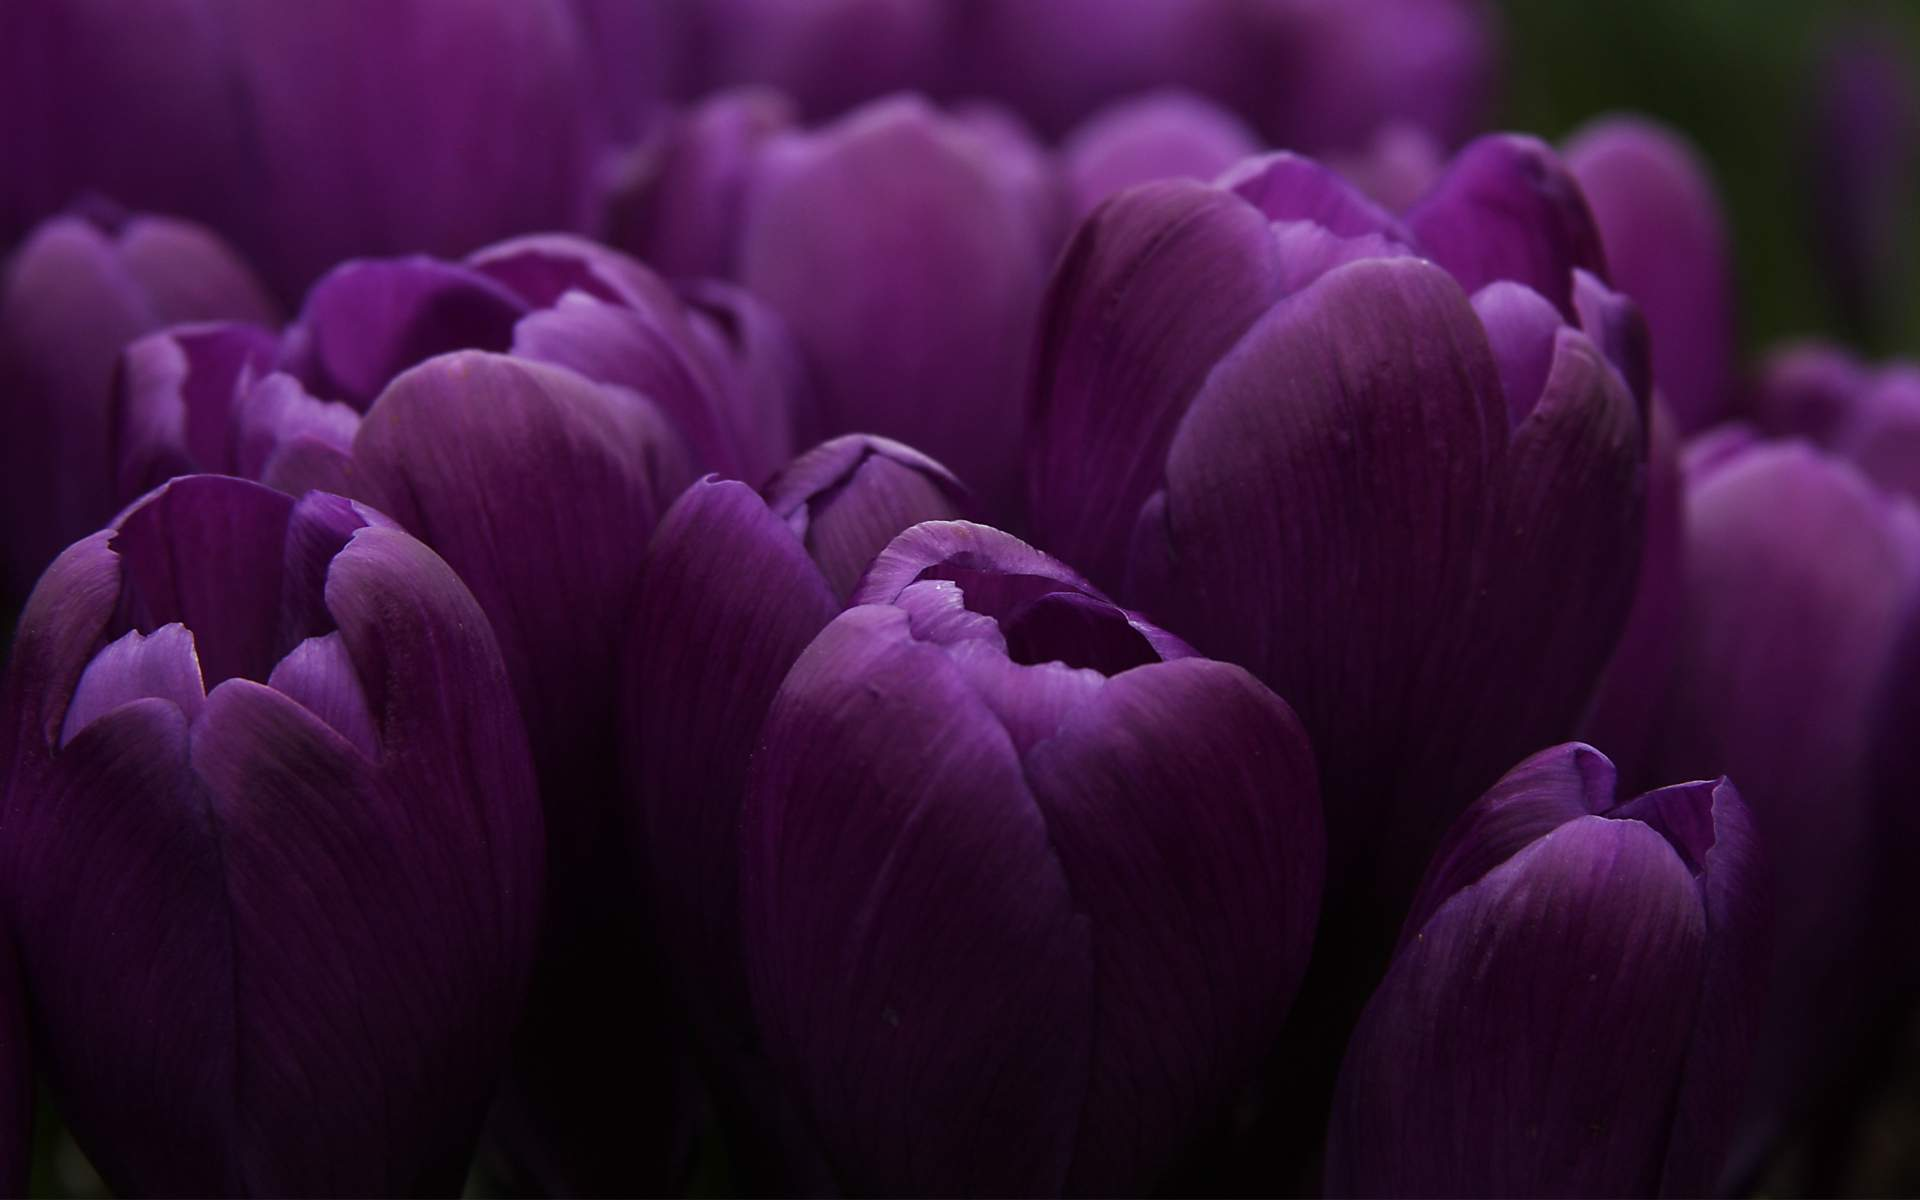 Purple flowers wallpapers high quality download free purple flowers wallpapers mightylinksfo